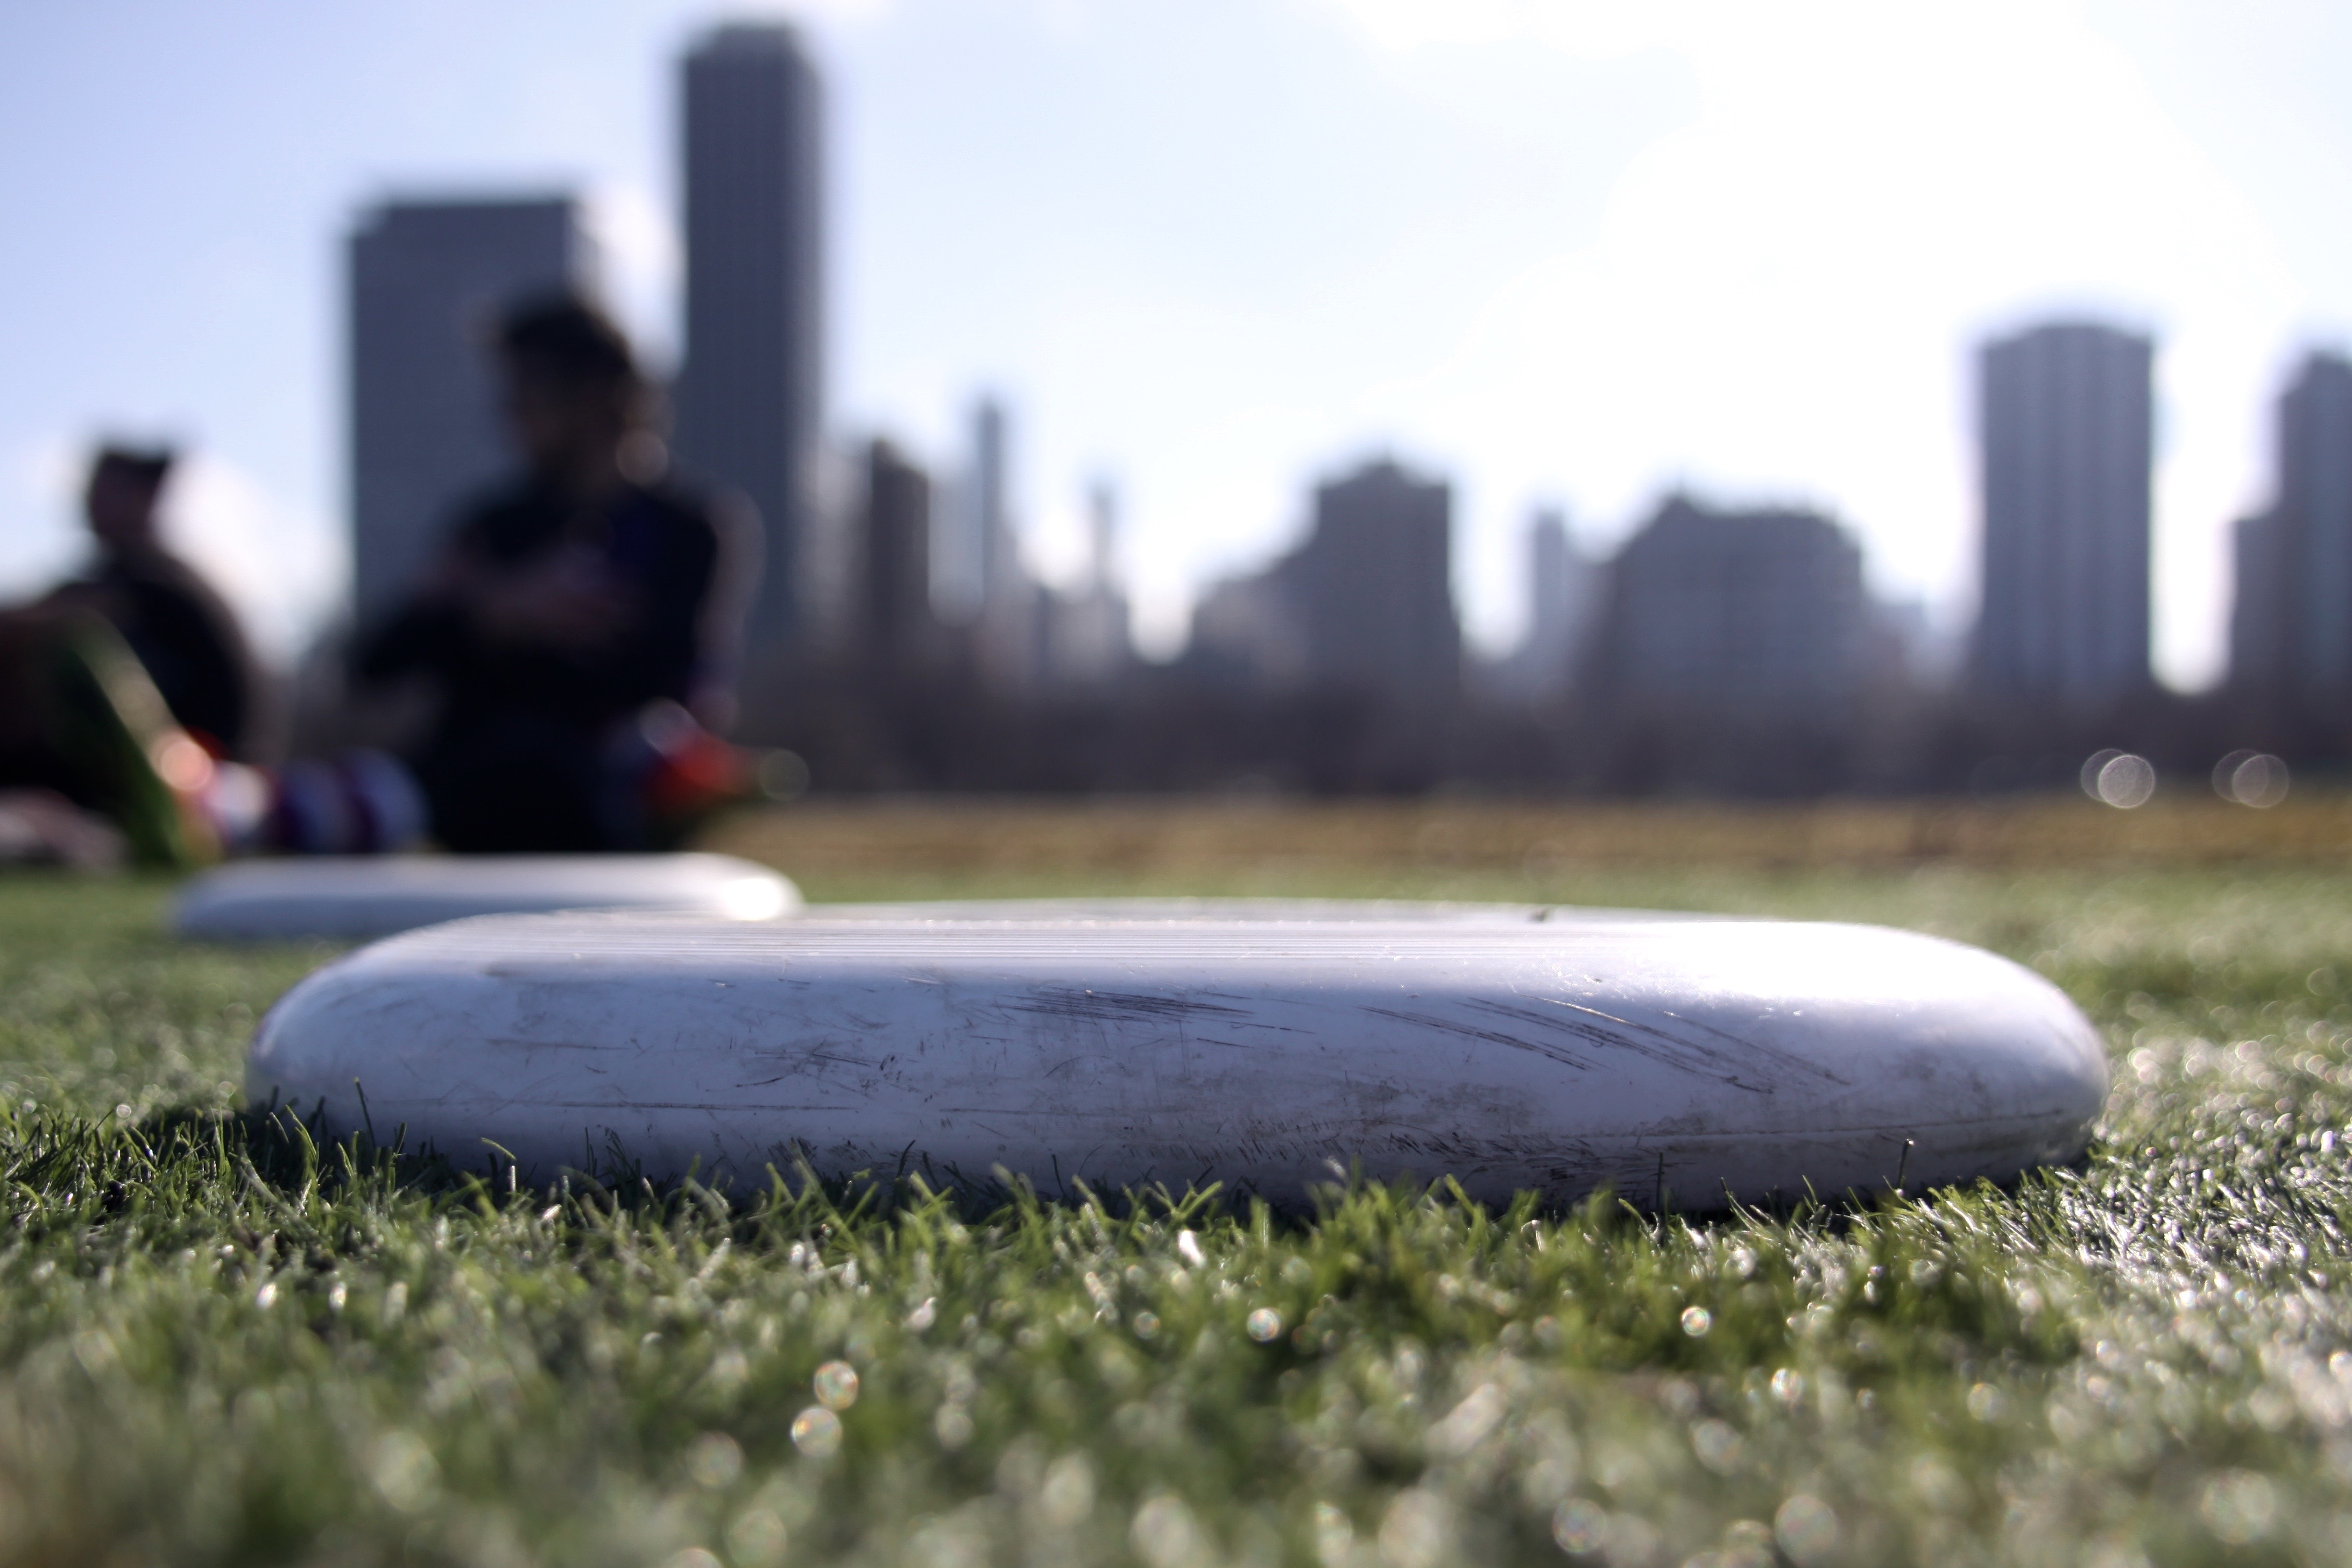 Sunshine highlights a severely scuffed Frisbee and the bright green turf at the end of a DePaul Ultimate Club practice on Jan. 21, 2017. (Photo/Ben Rains)